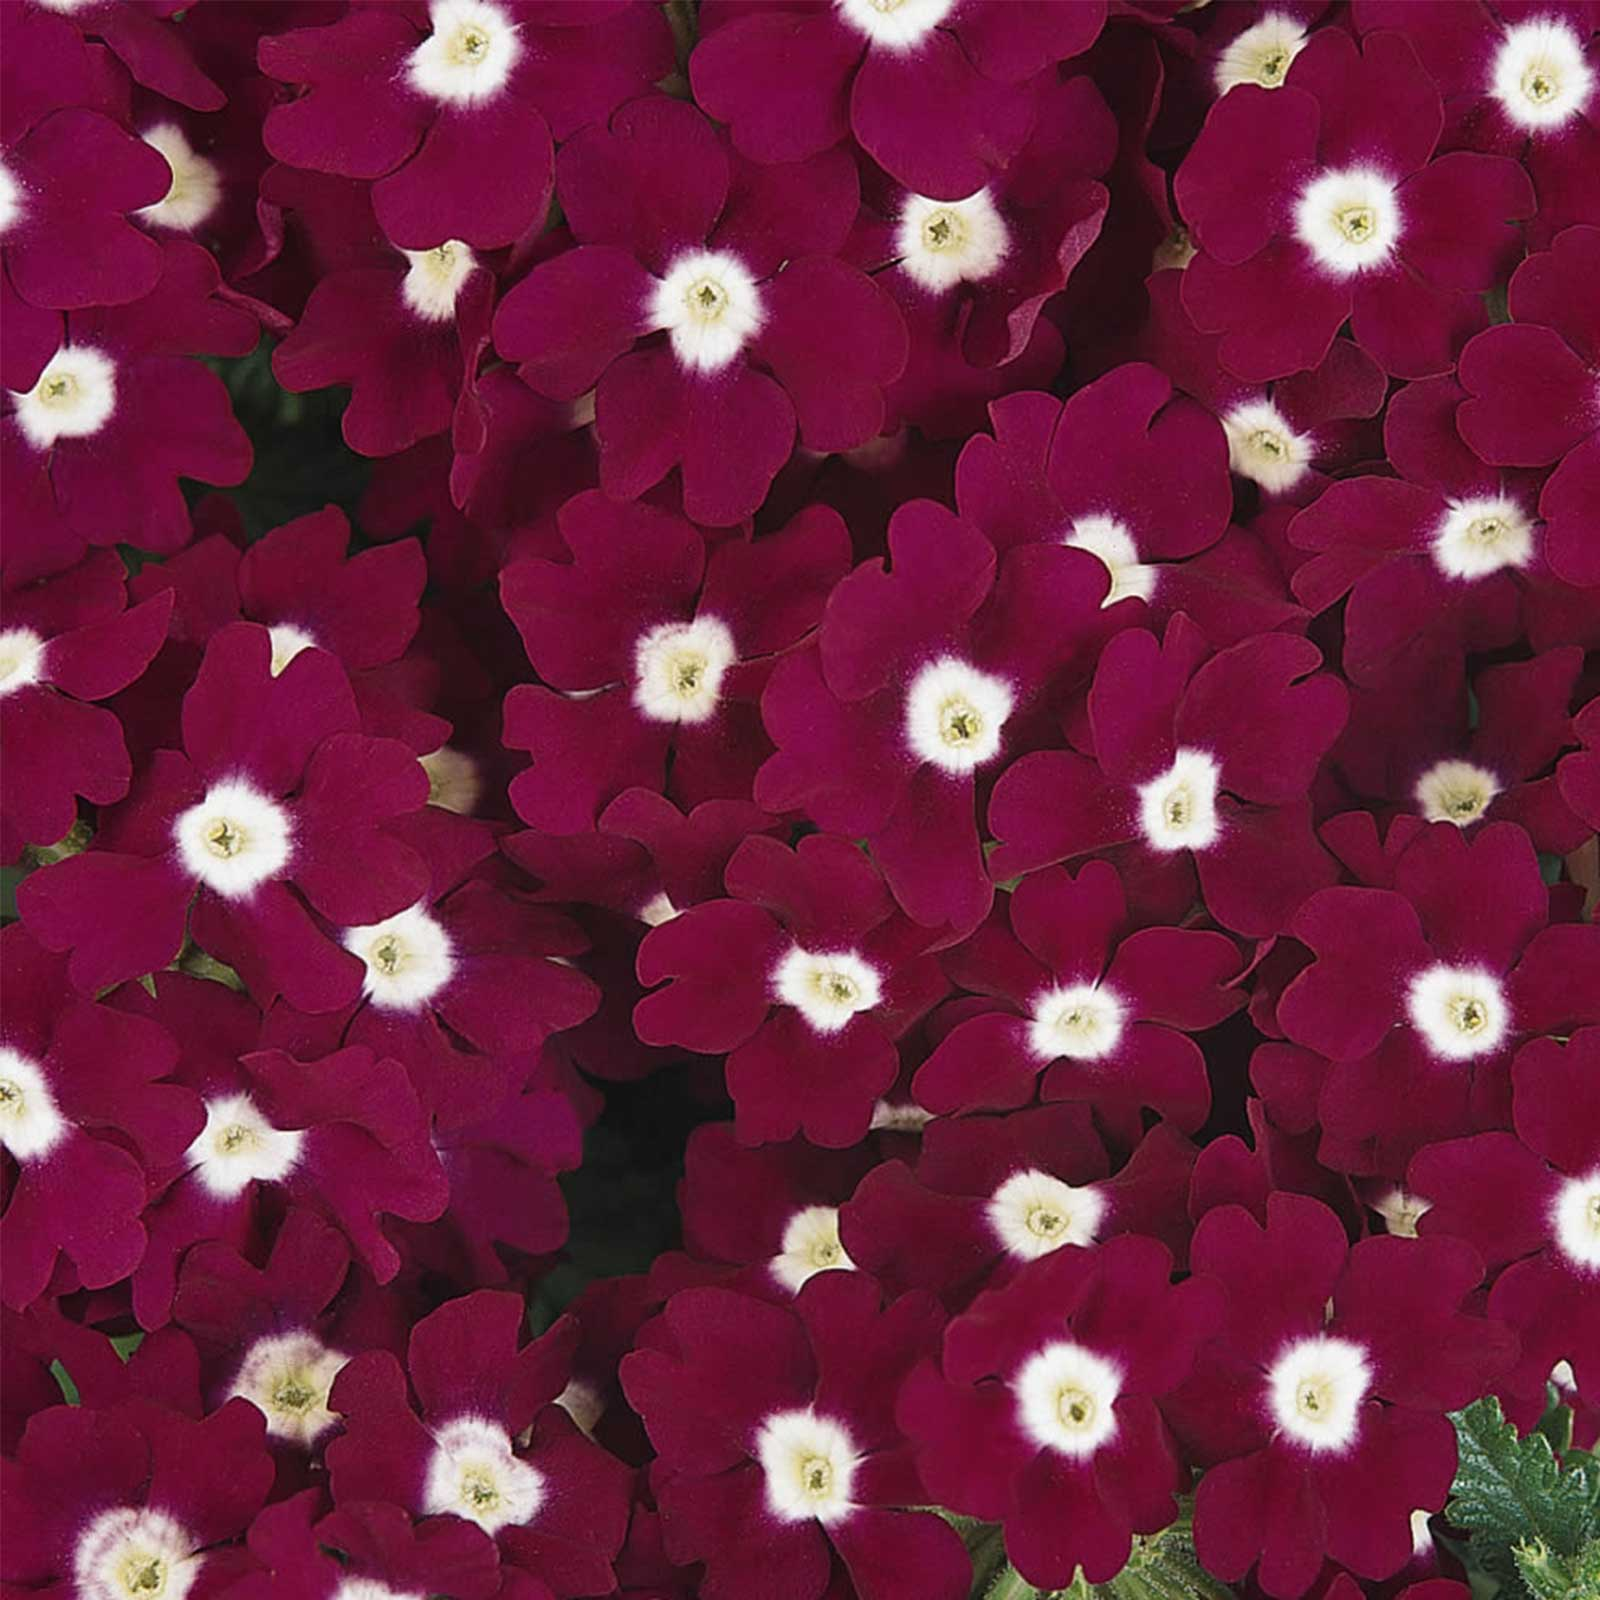 Verbena flower garden seeds quartz xp burgundy eye 1000 seed verbana x hybrida aas winner for 1999 bedding plant award winner deep wine red color with small white eye is a unique feature of this verbena izmirmasajfo